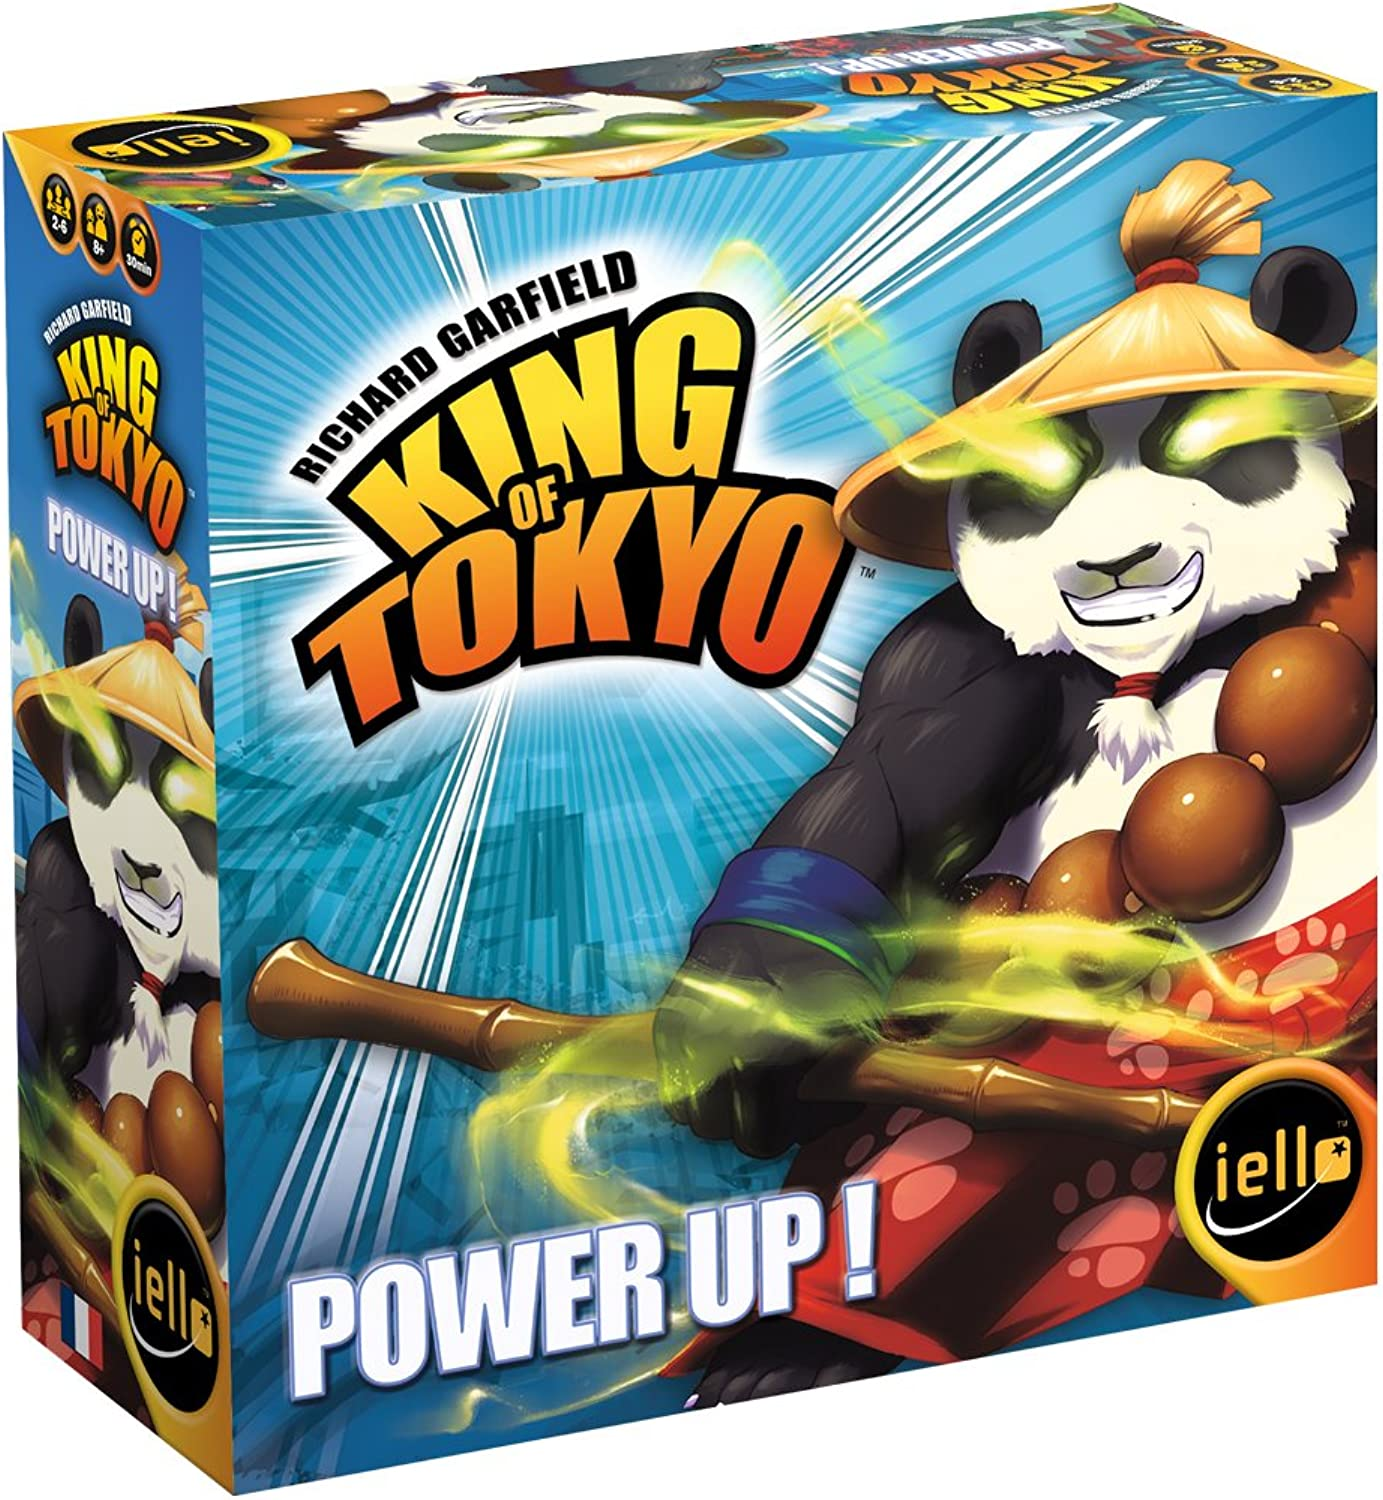 Iello King of Tokyo Power Up  51369